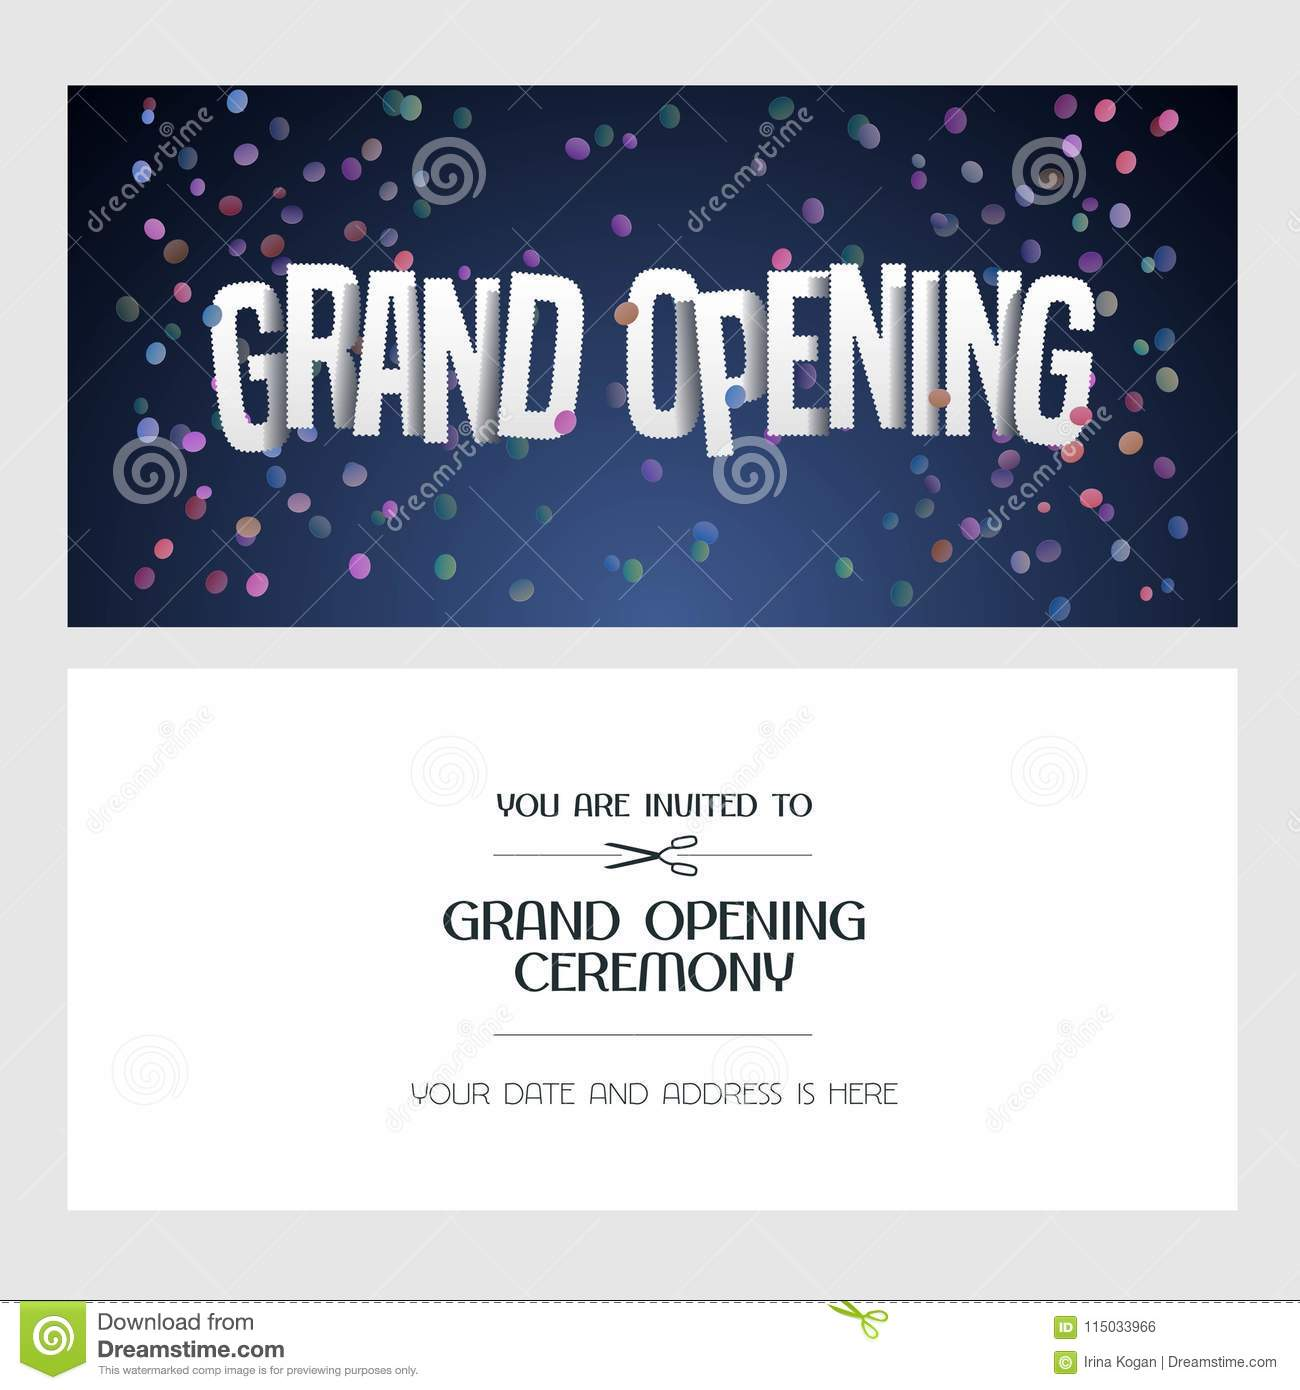 Grand Opening Vector Illustration, Invitation Card For New Shop. Template  Banner, Invite For Opening Event, Red Ribbon Cutting Ceremony